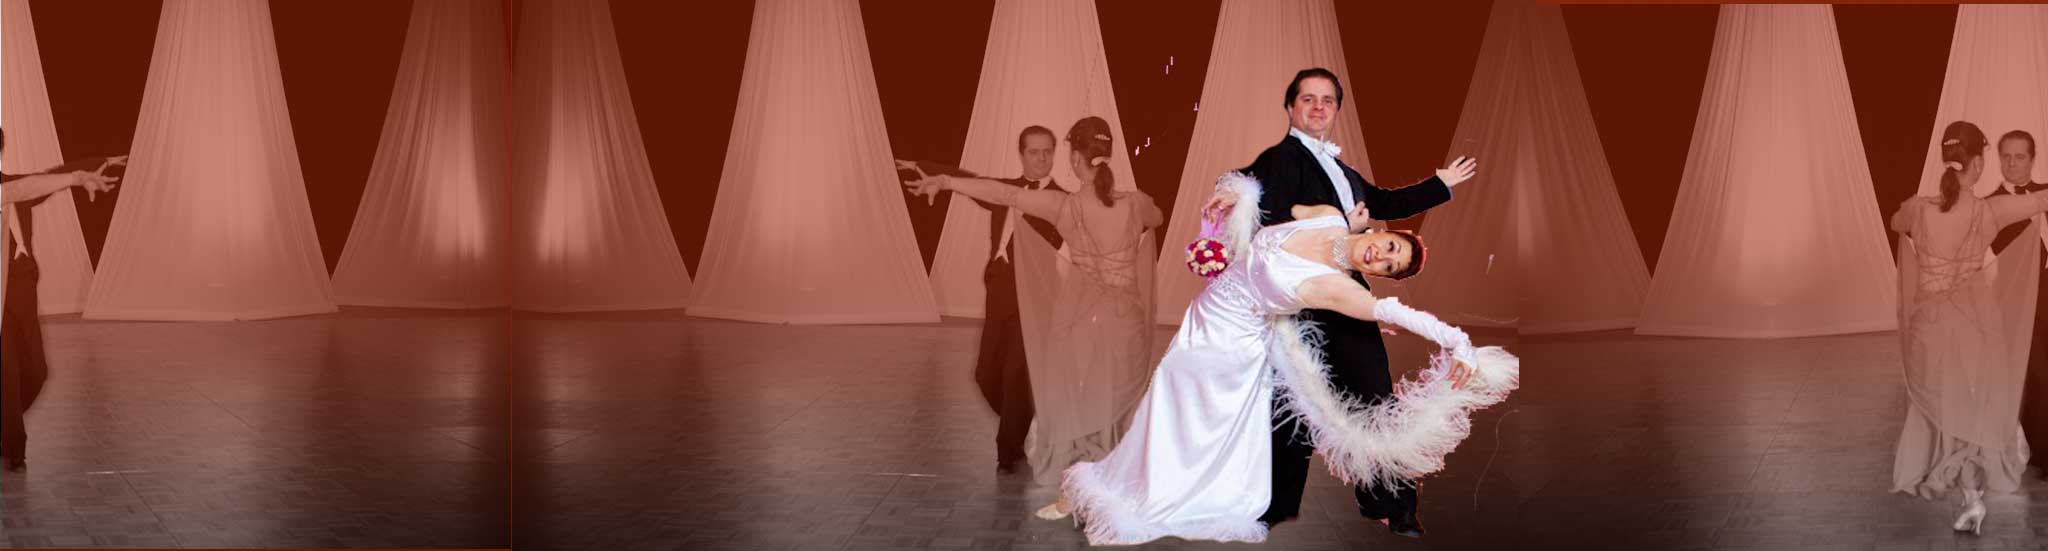 Wedding Dance Packages